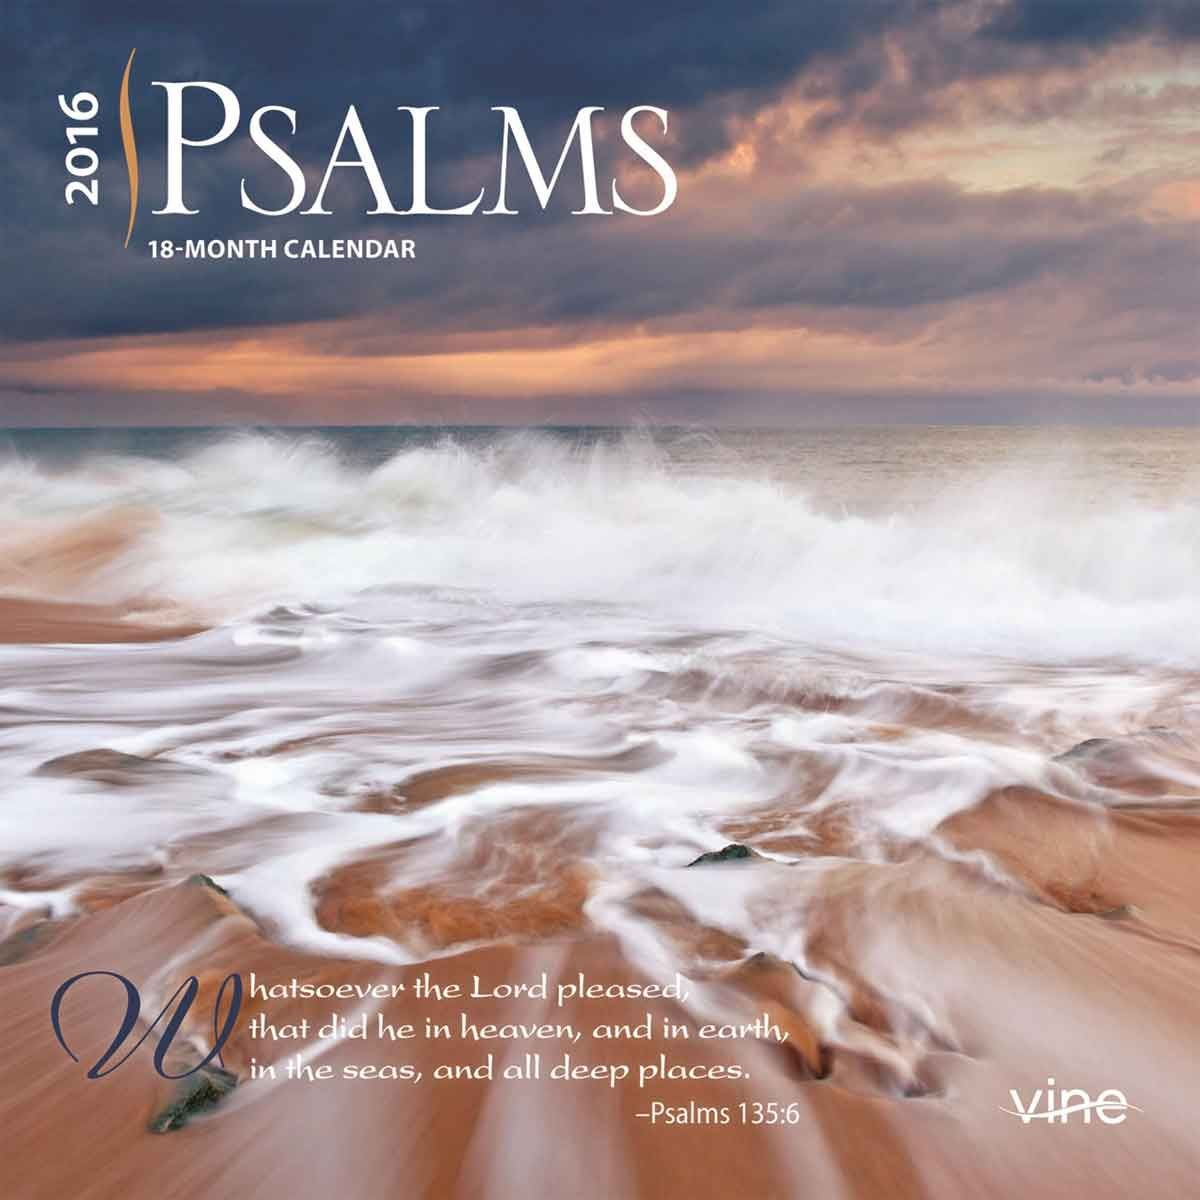 Psalms mini calendar calendars pinterest